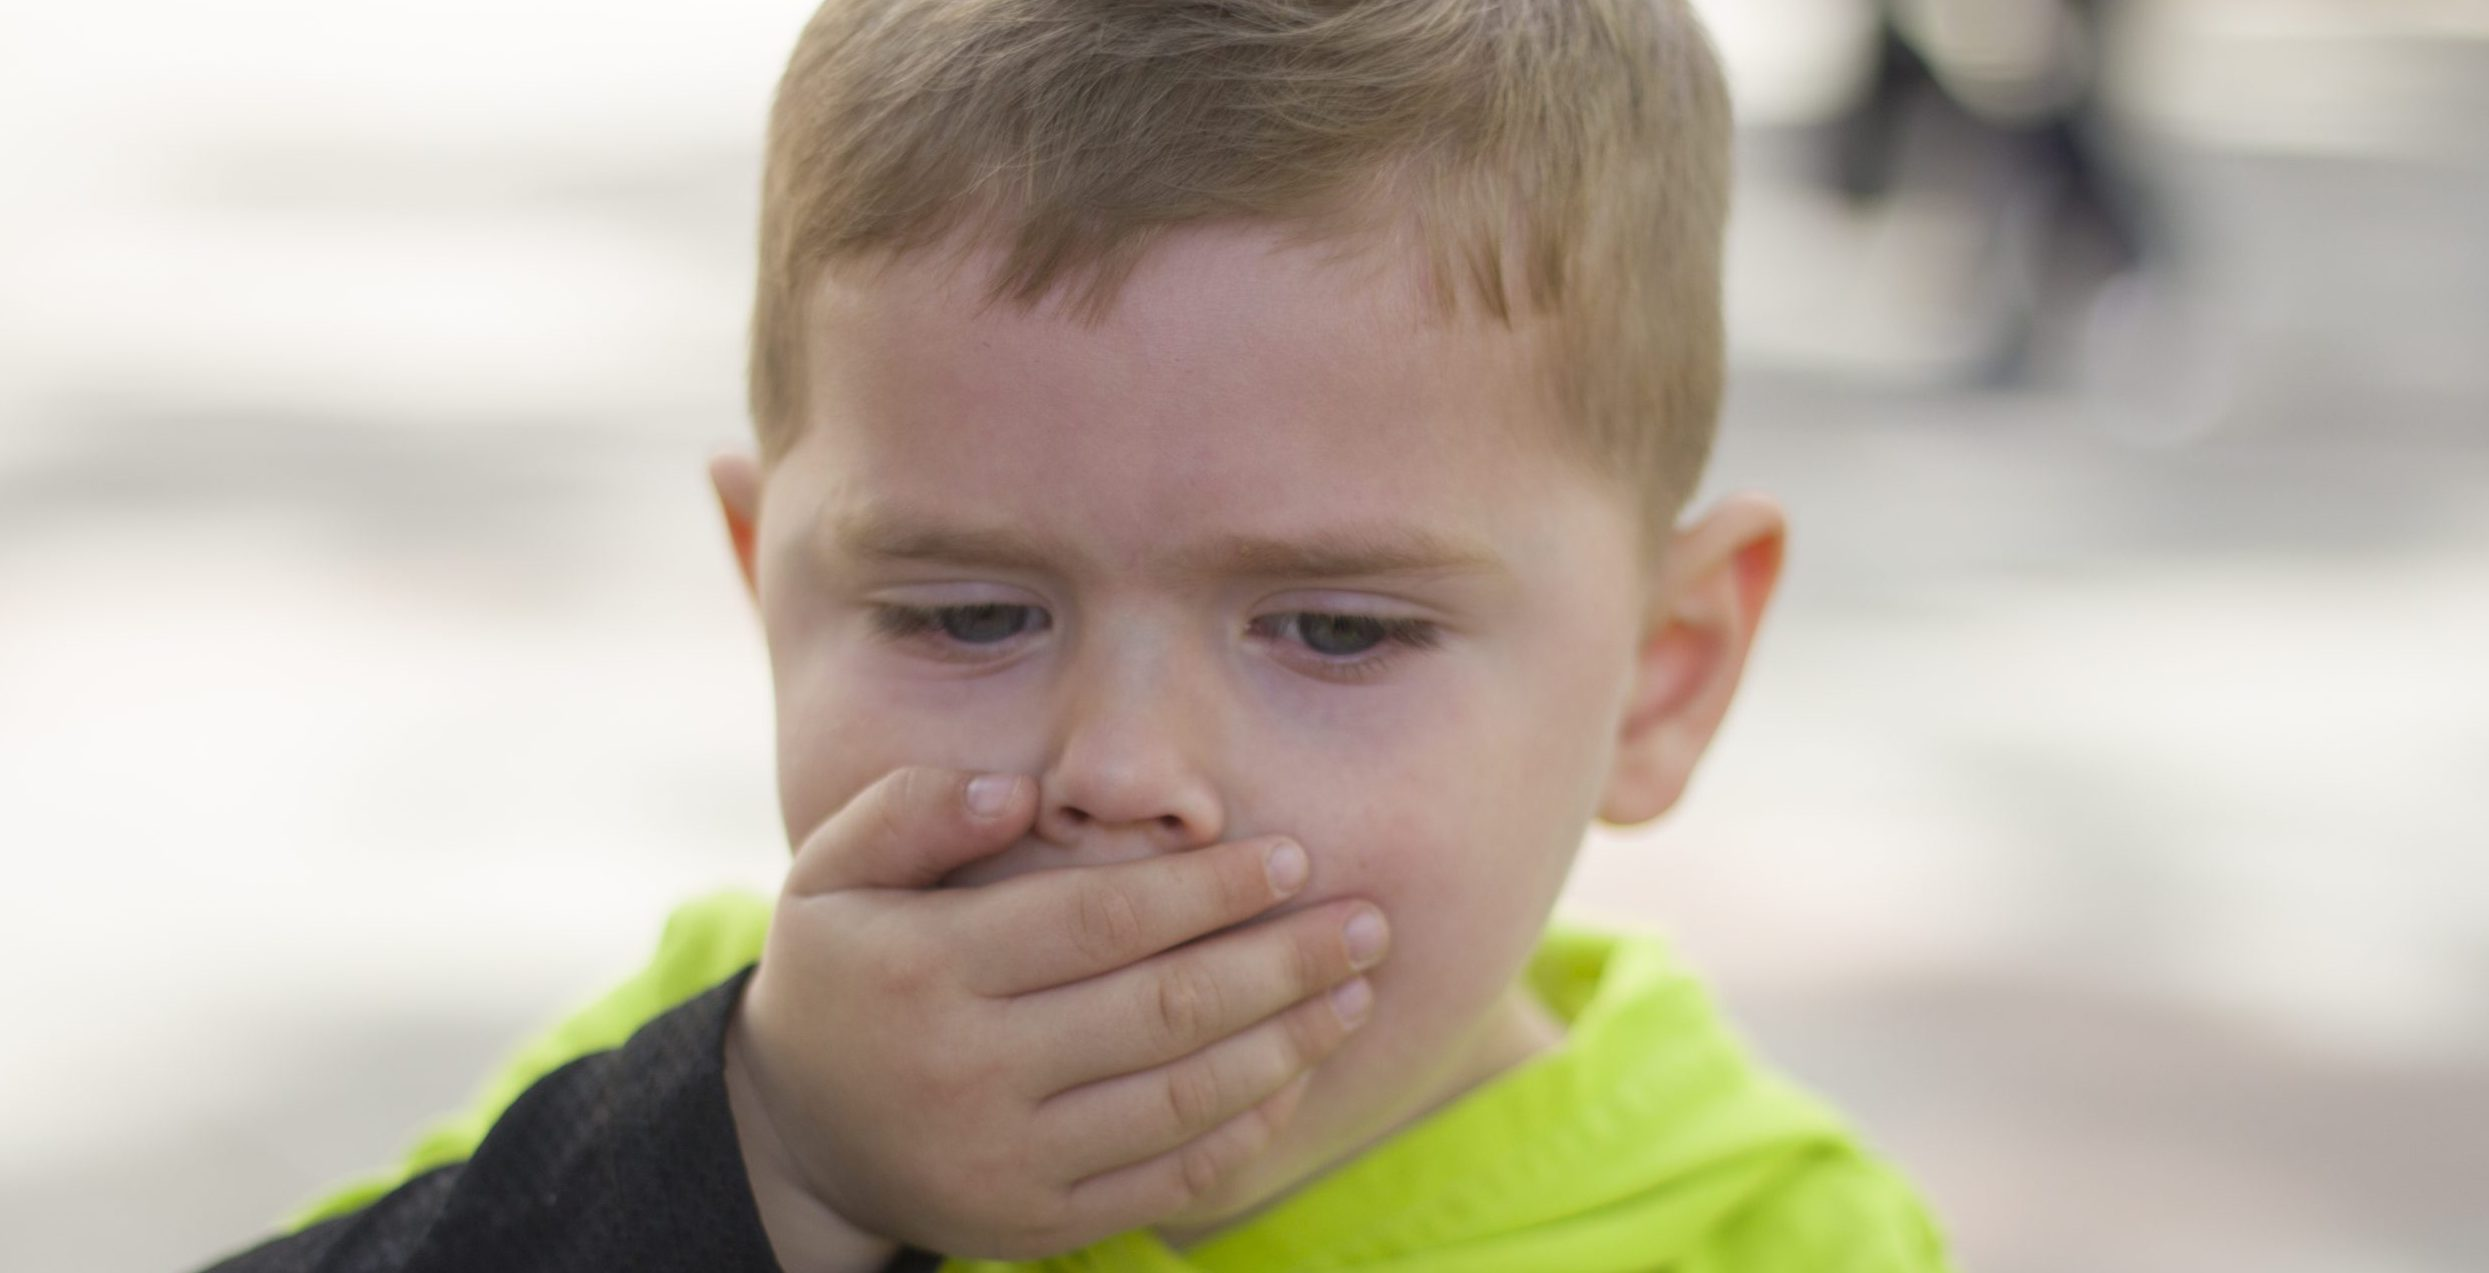 Asthma in Children: What Concerned Parents Should Know